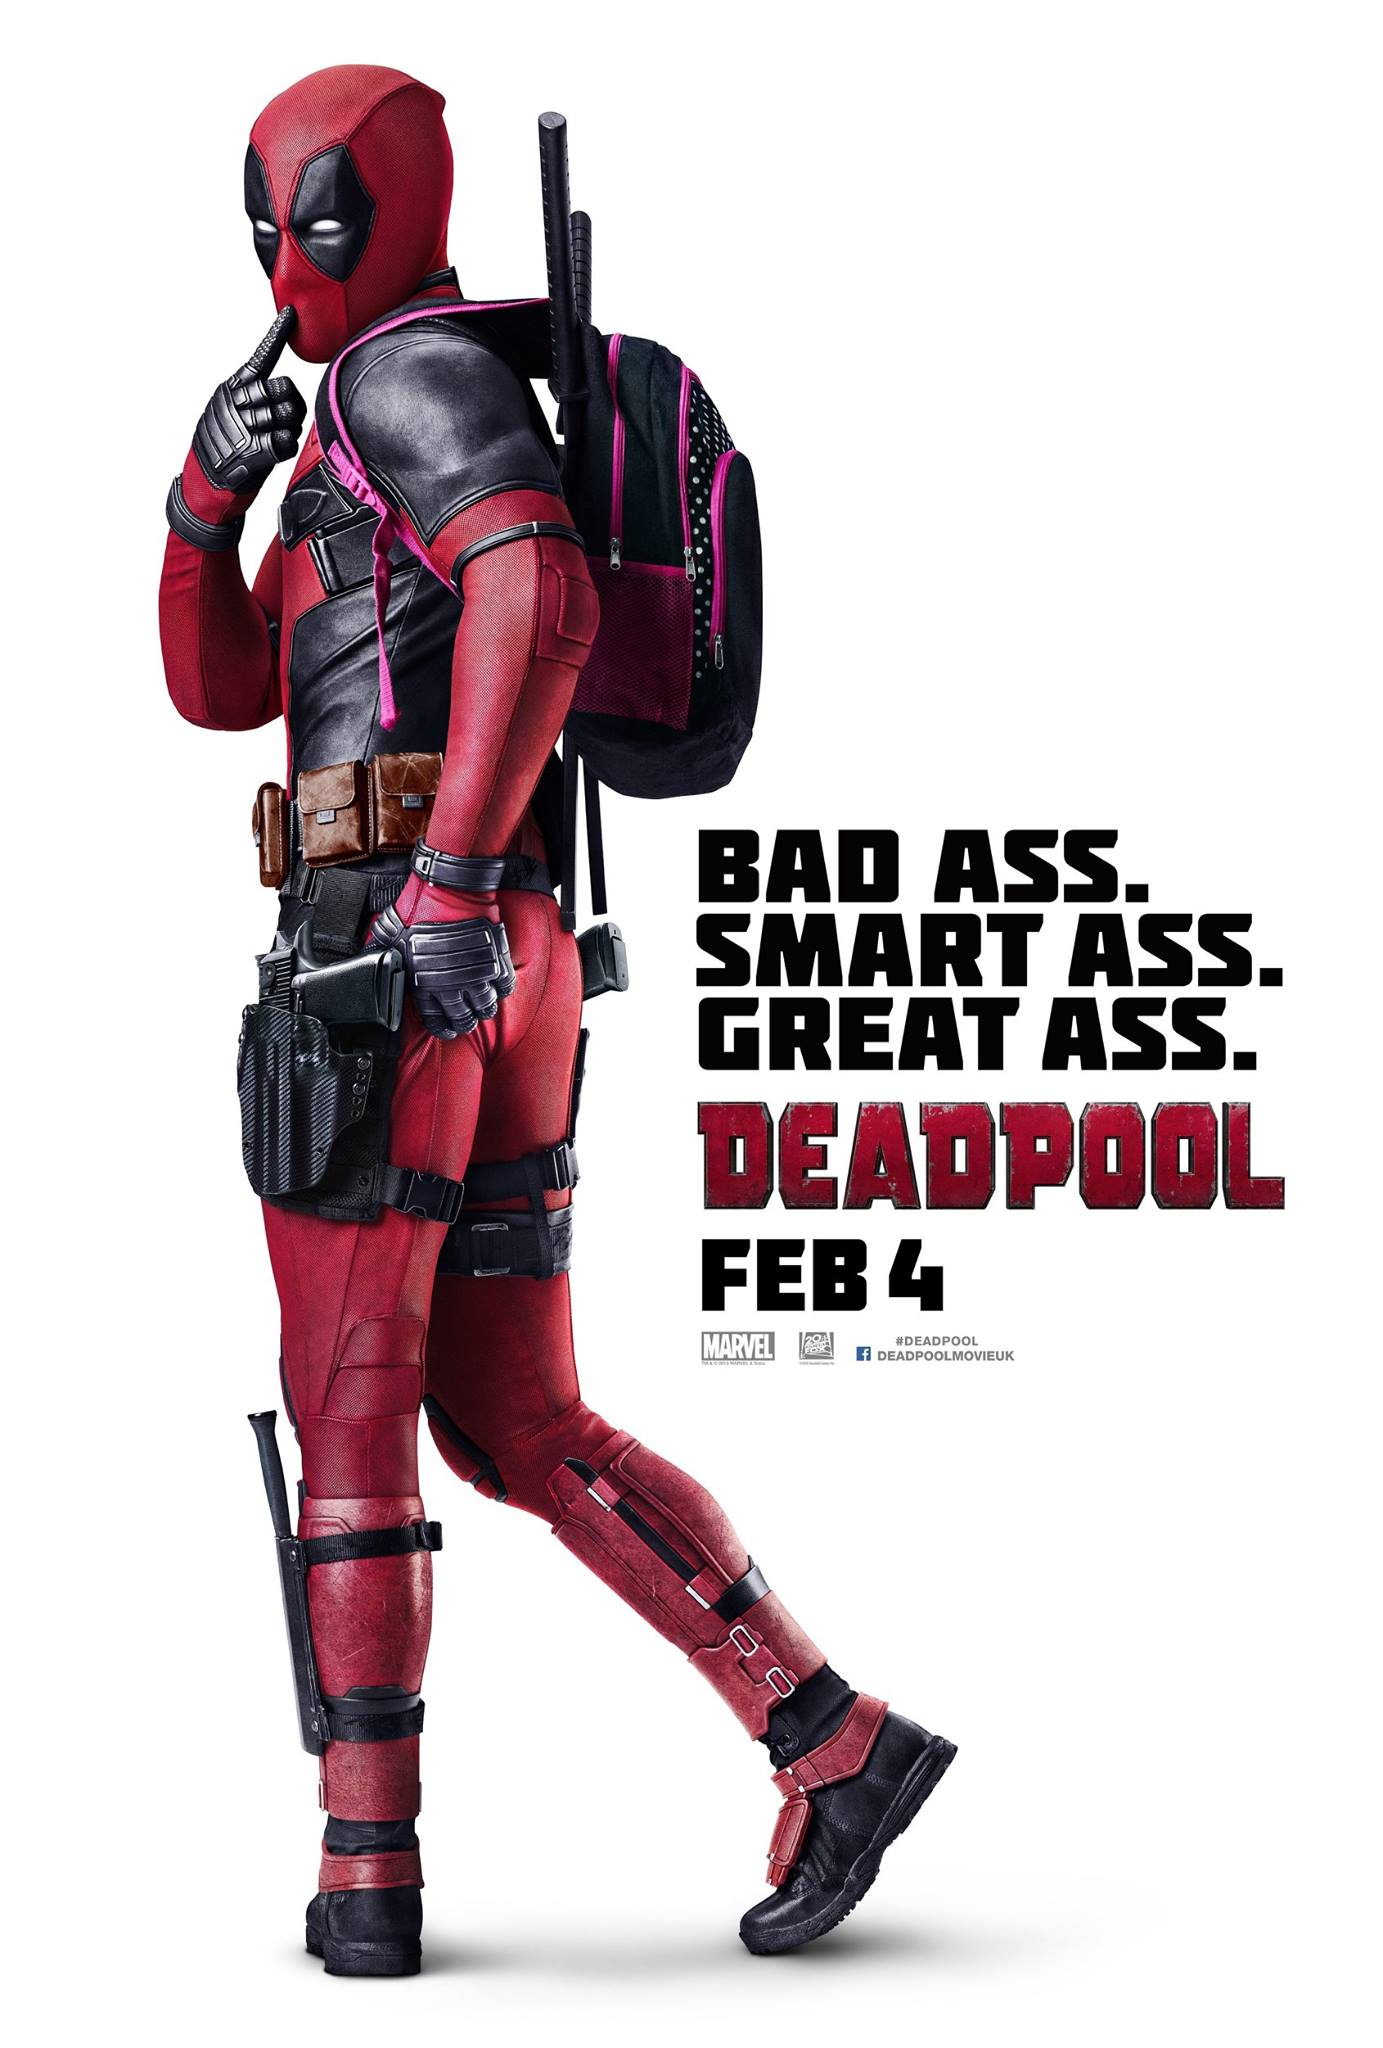 Do you think this new deadpool poster has a great ass ramas screen here see it for yourself in this new international poster and leave your answer in the comment section below deadpool solutioingenieria Images